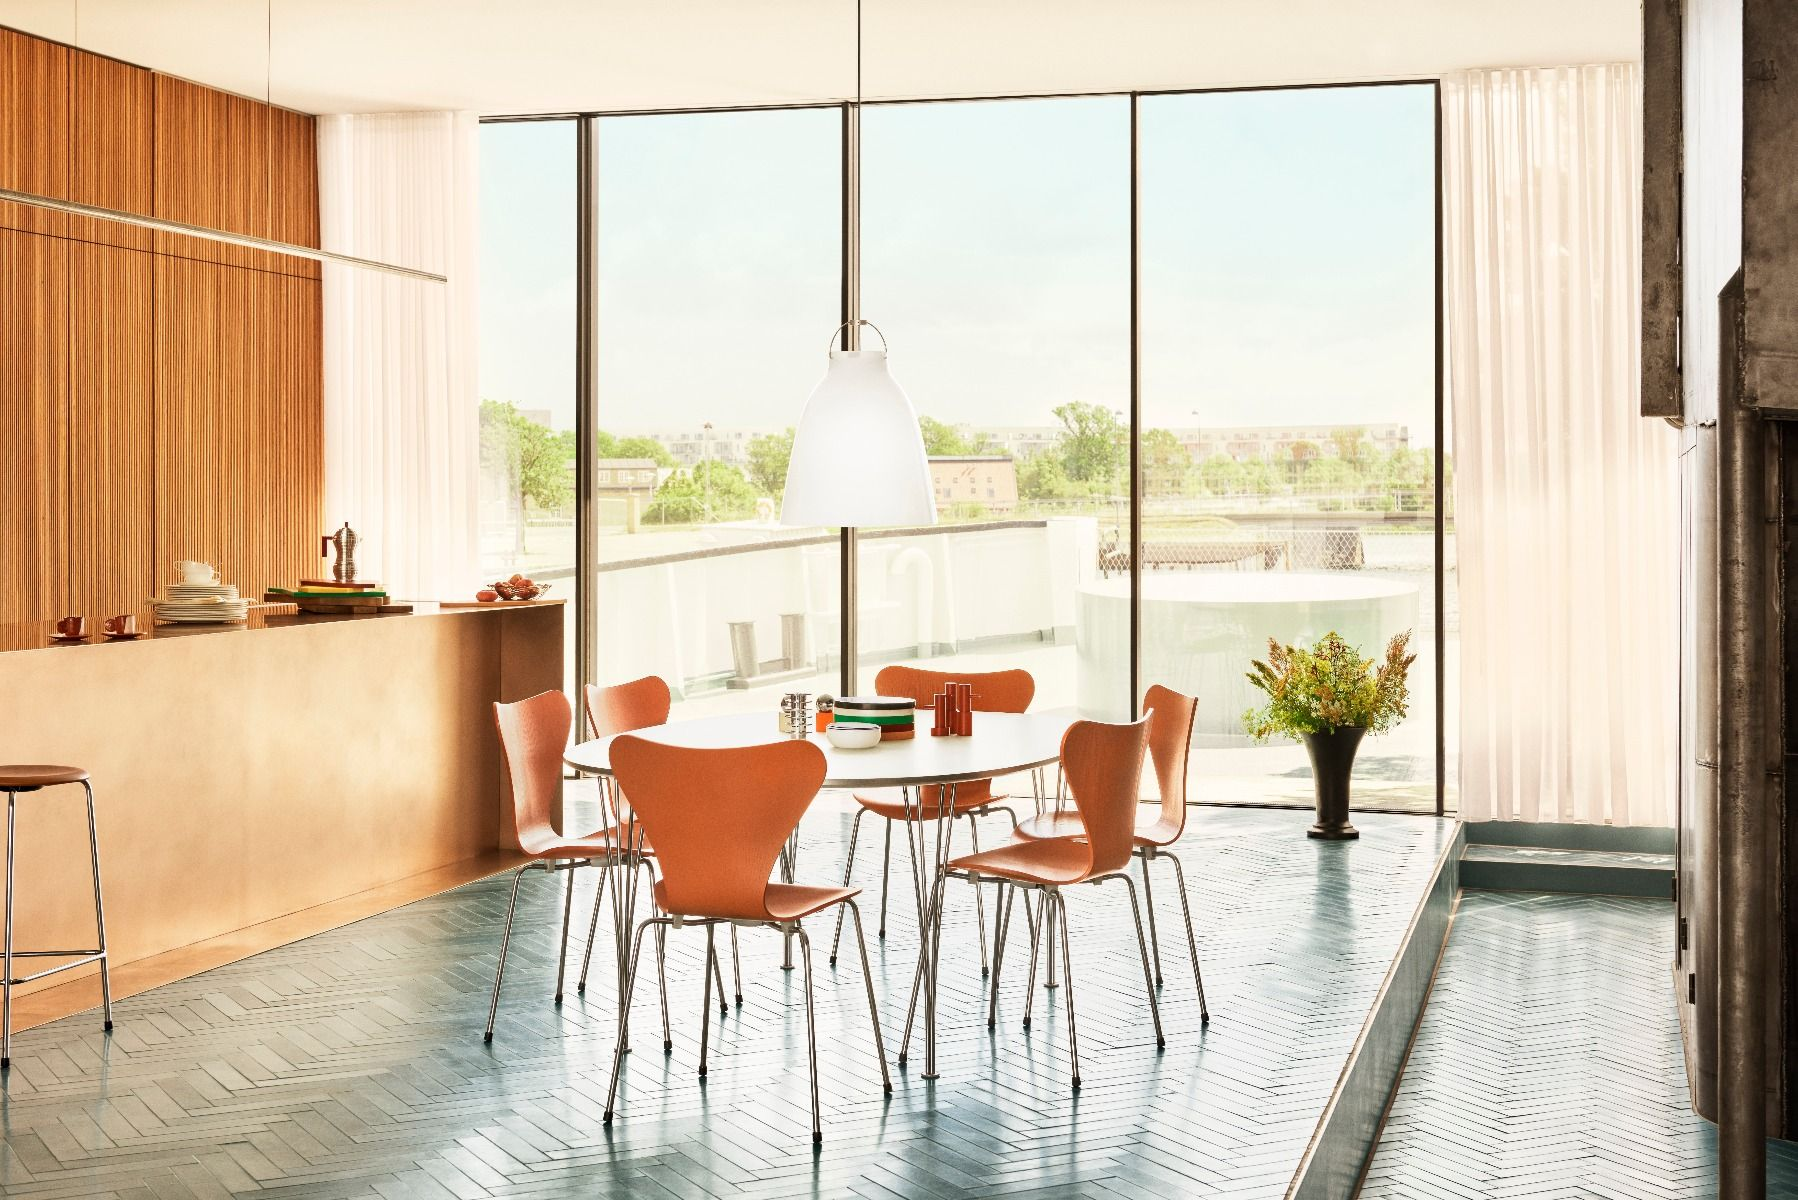 Fritz Hansen Caravaggio pendant light Opal in kitchen hanging over table